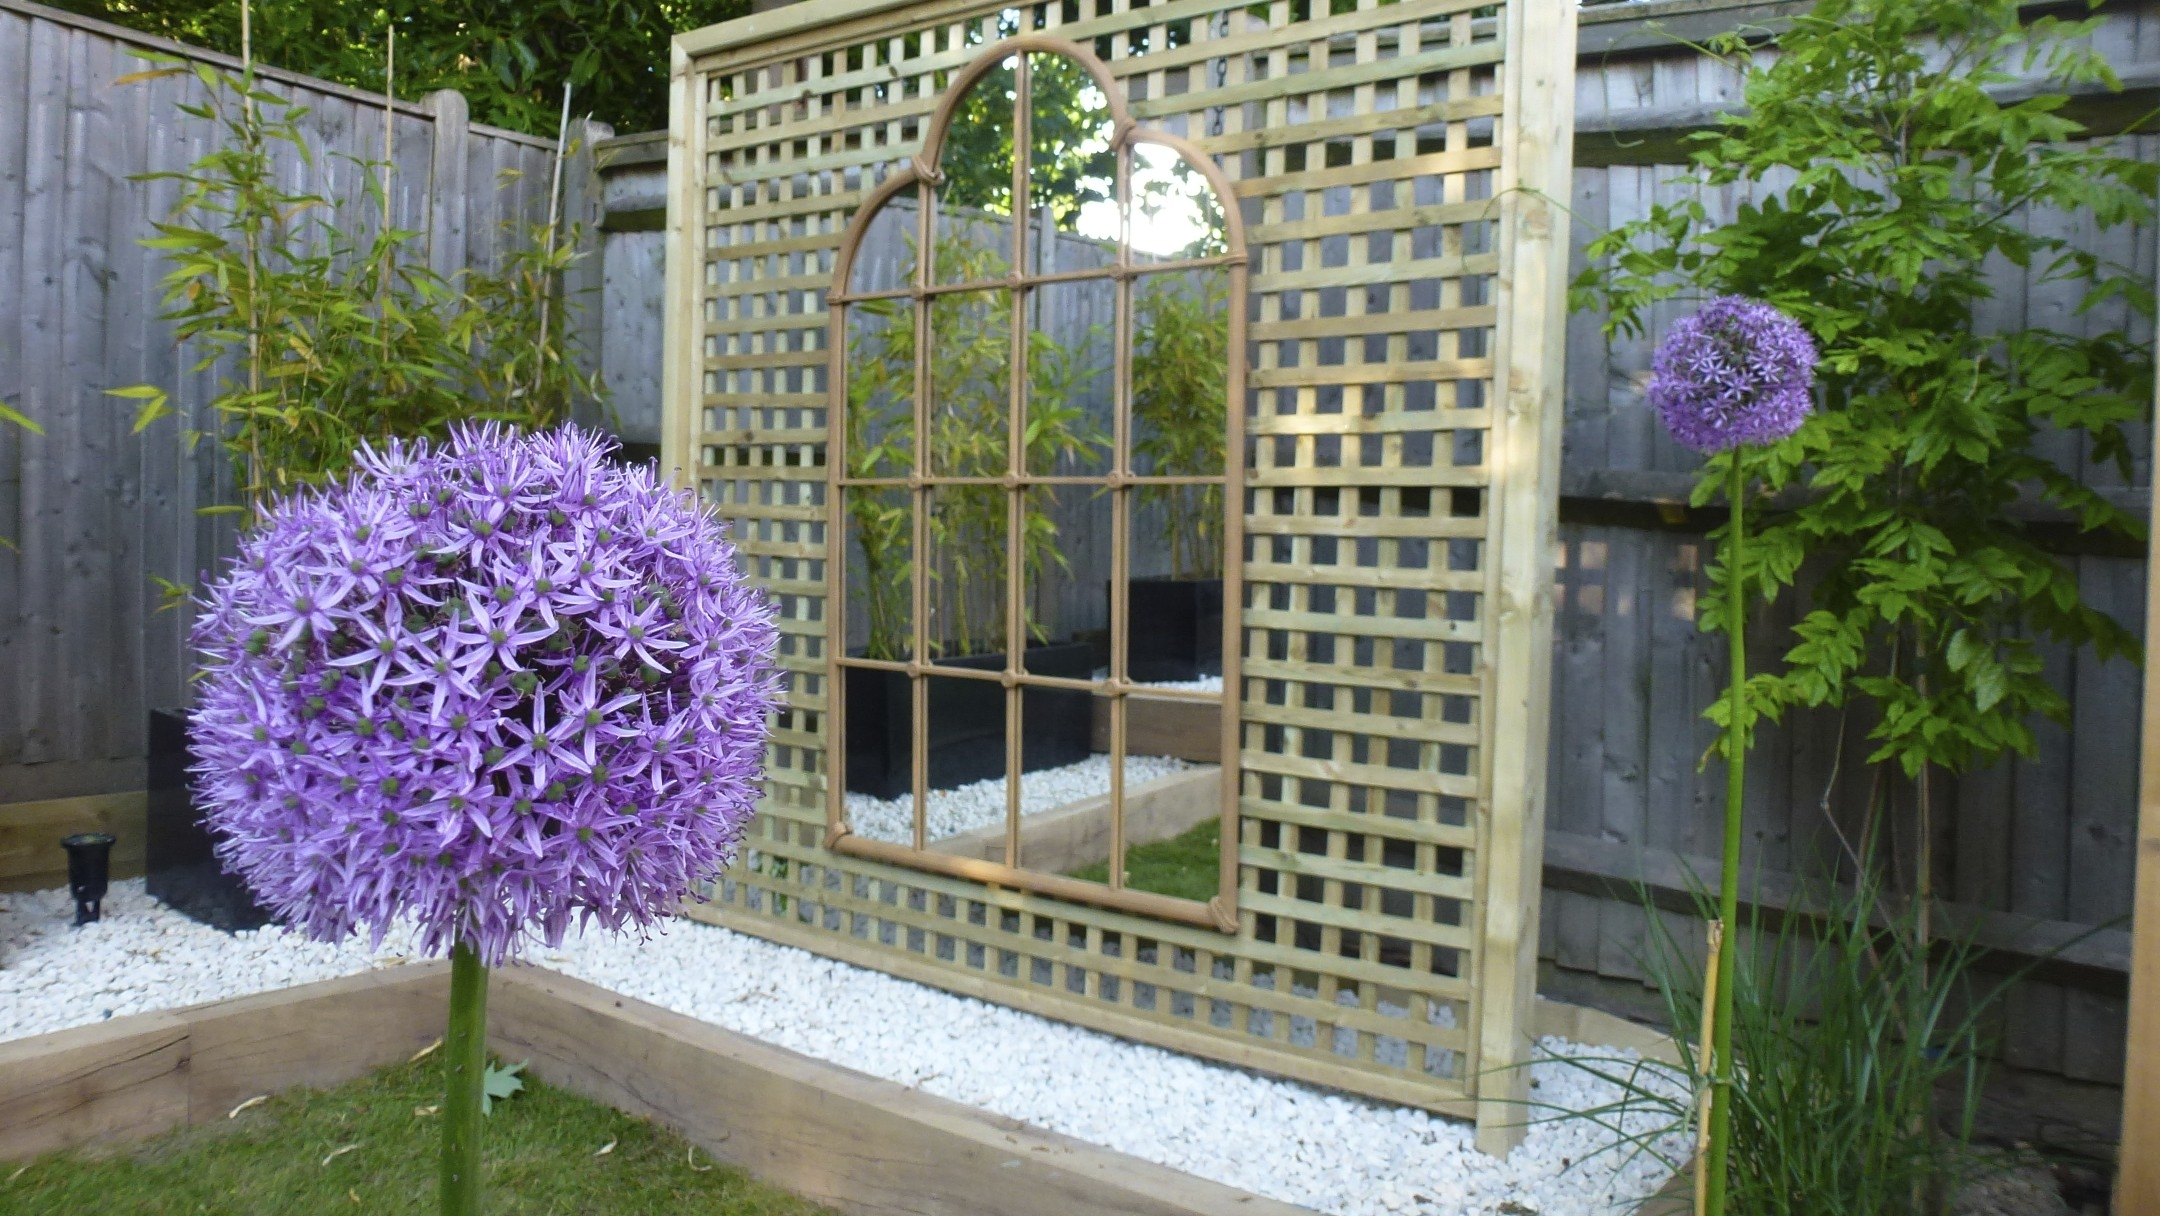 Garden Mirrors Garden Mirror 6ft X 1ft Large Narrow Garden Mirror Regarding Garden Mirrors (Image 11 of 15)